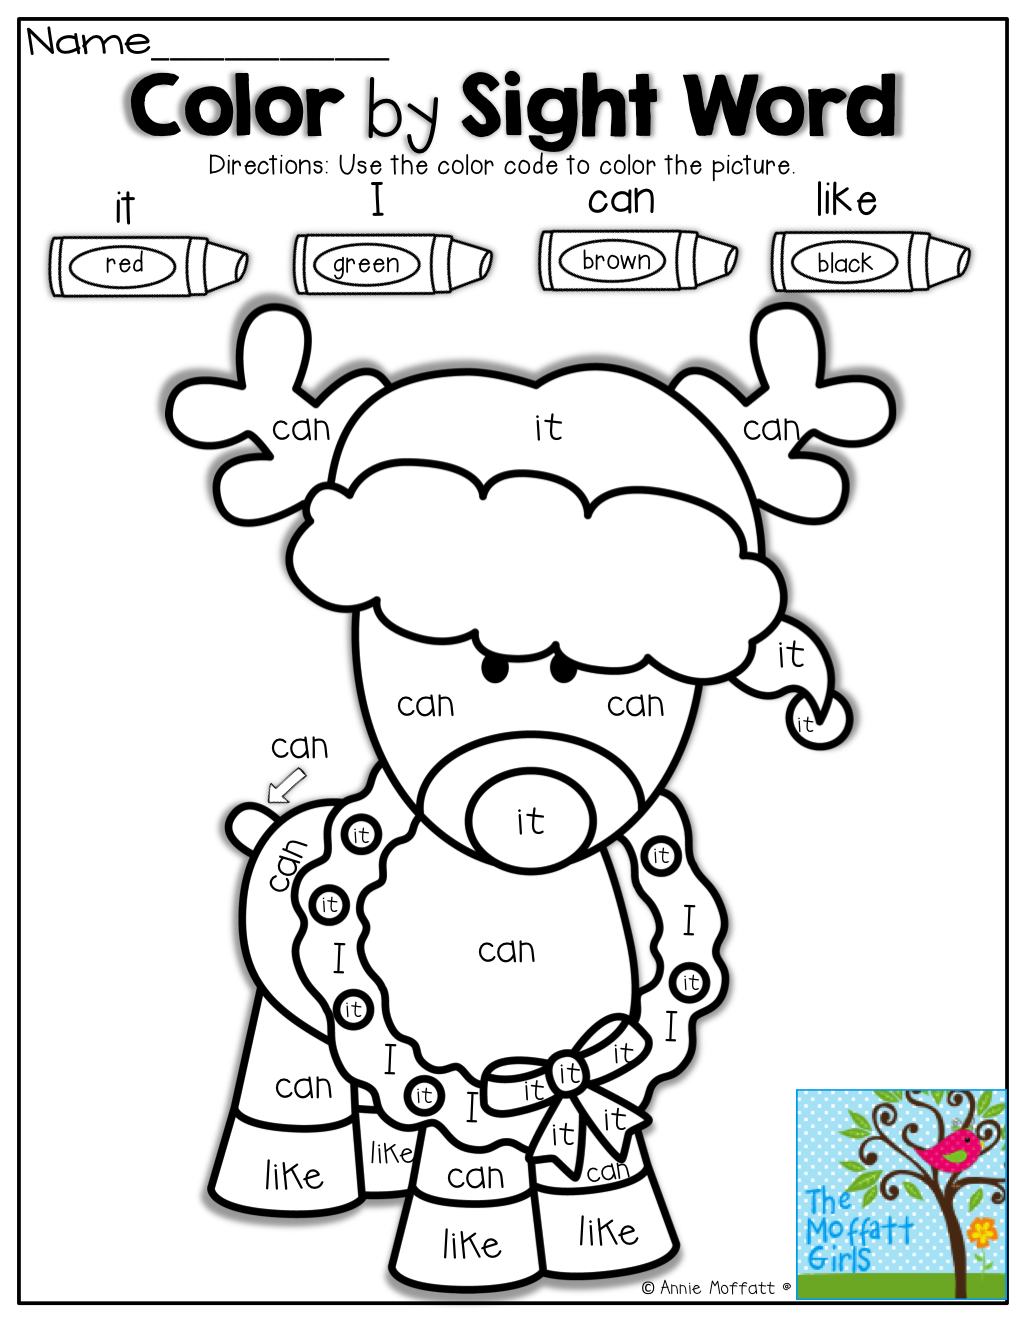 Workbooks holiday worksheets for kindergarten : Color by SIGHT WORD and tons of other great printables! | Child ...